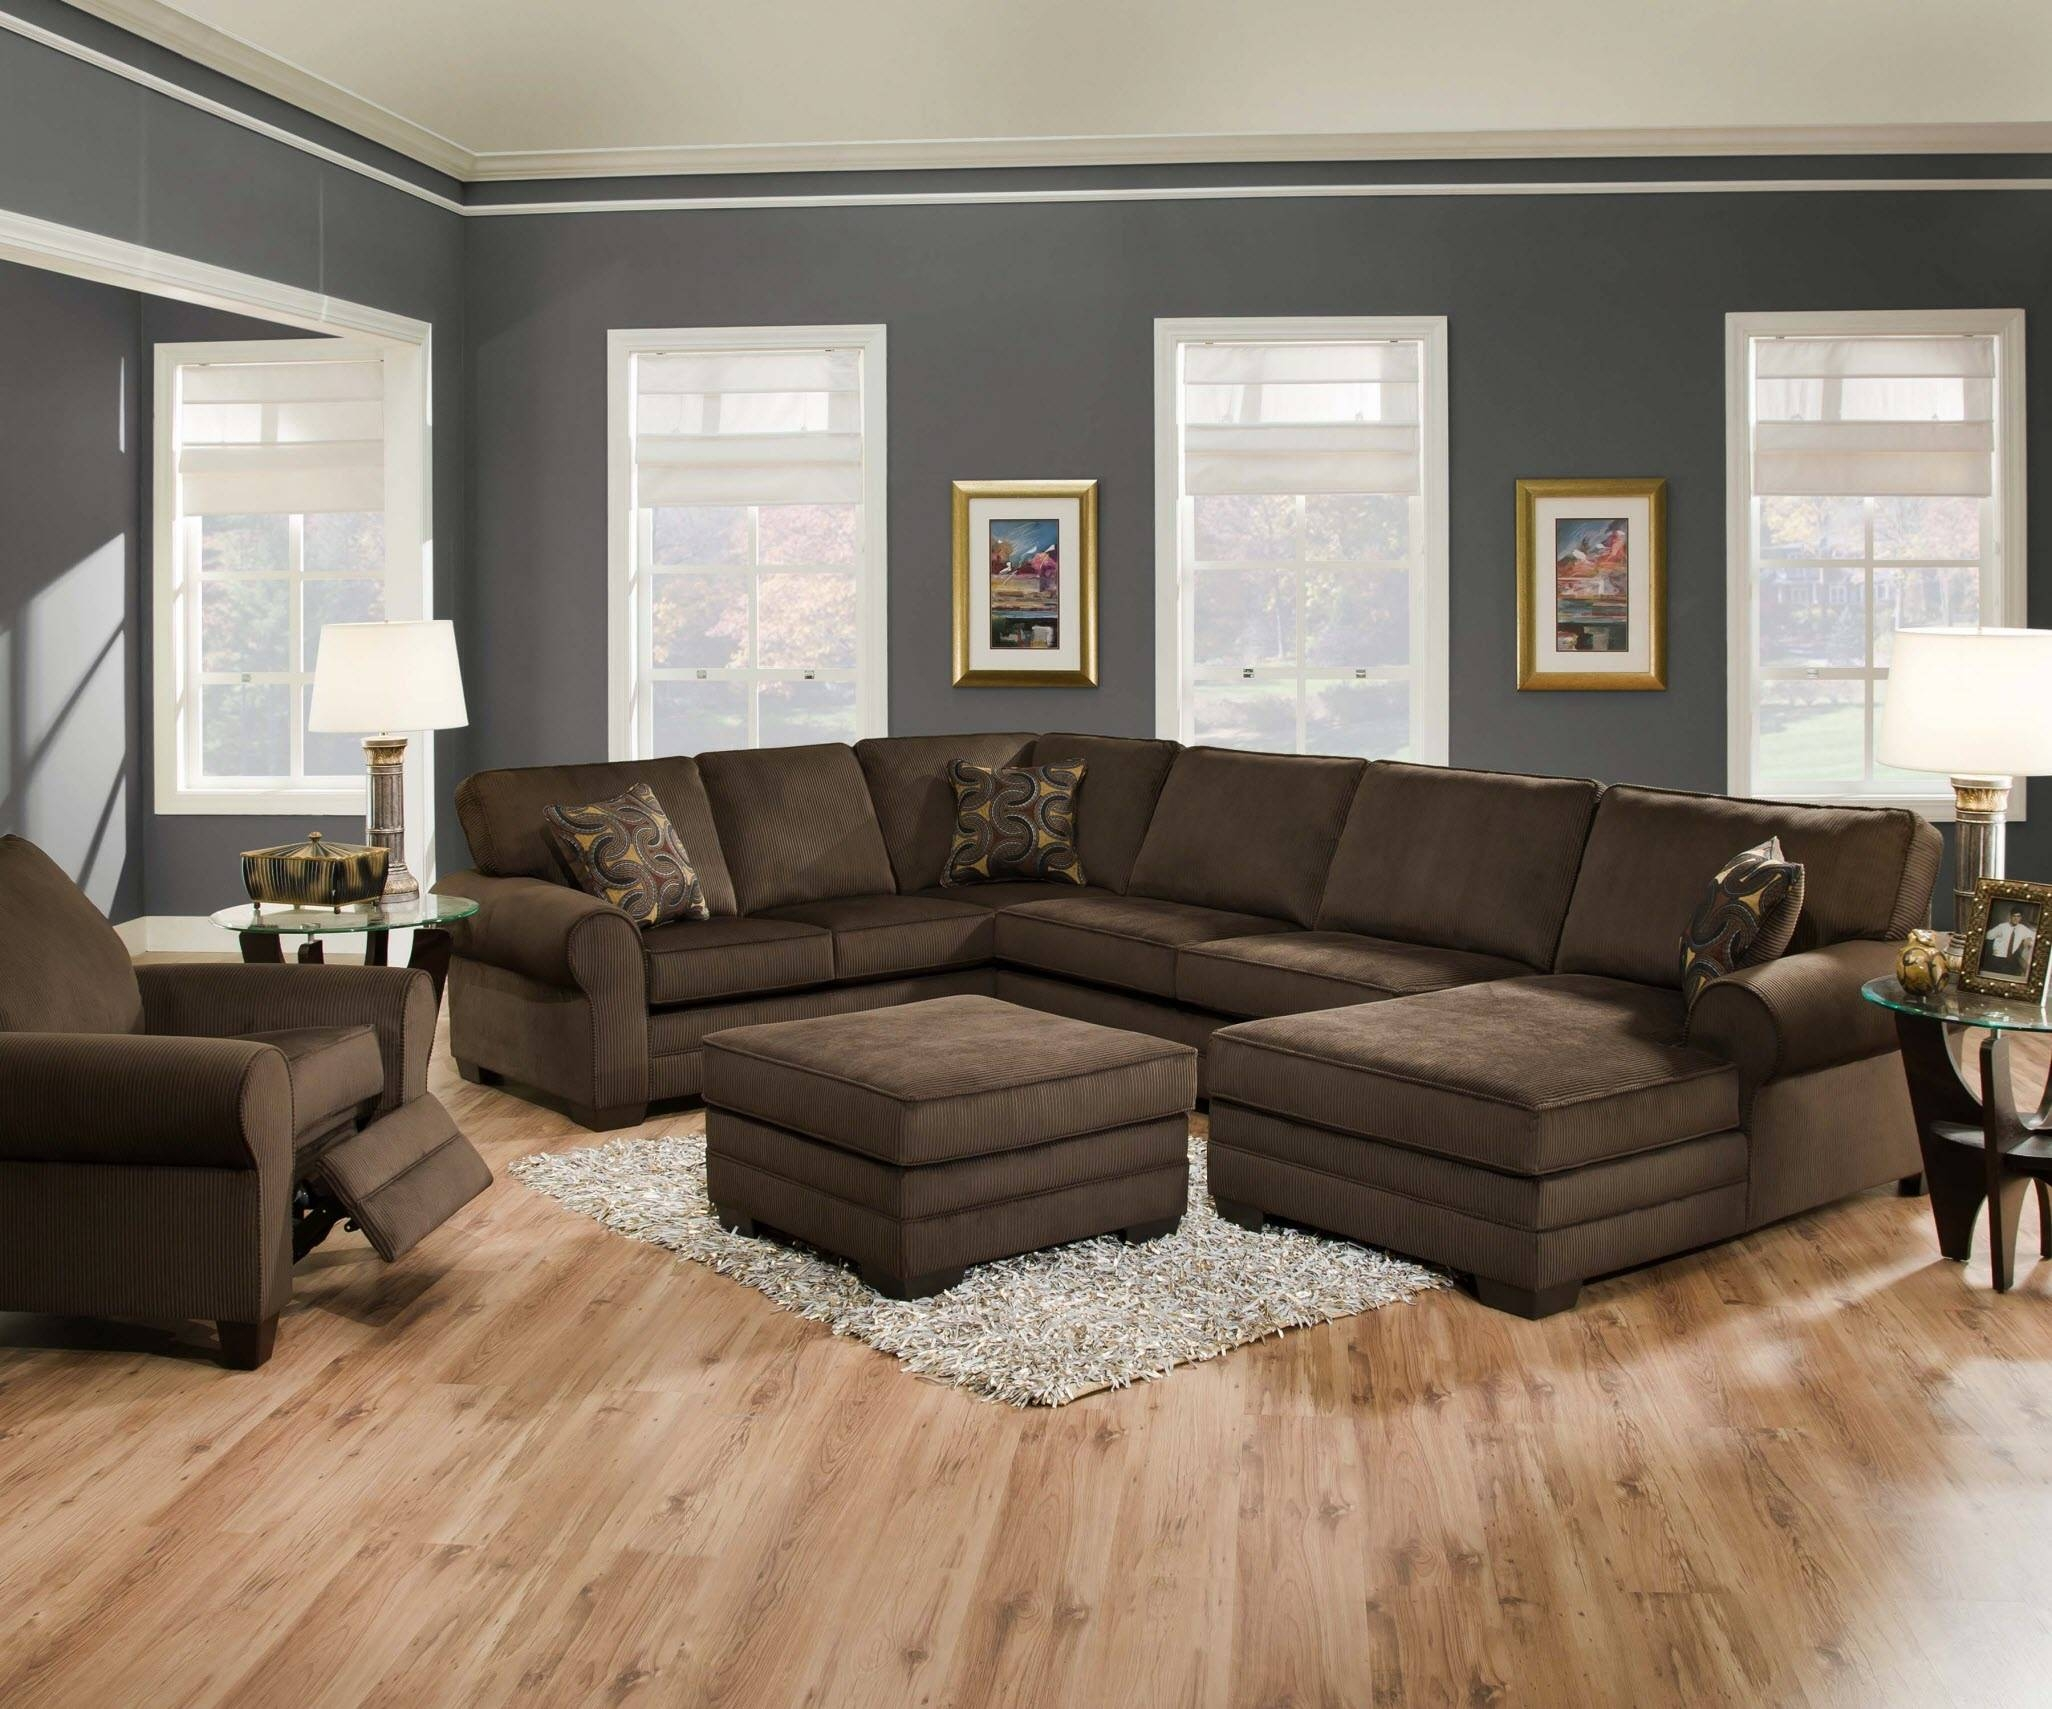 Designssimmons – Simmons Deluxe Beluga Sectional in Simmons Sectional Sofas (Image 3 of 30)